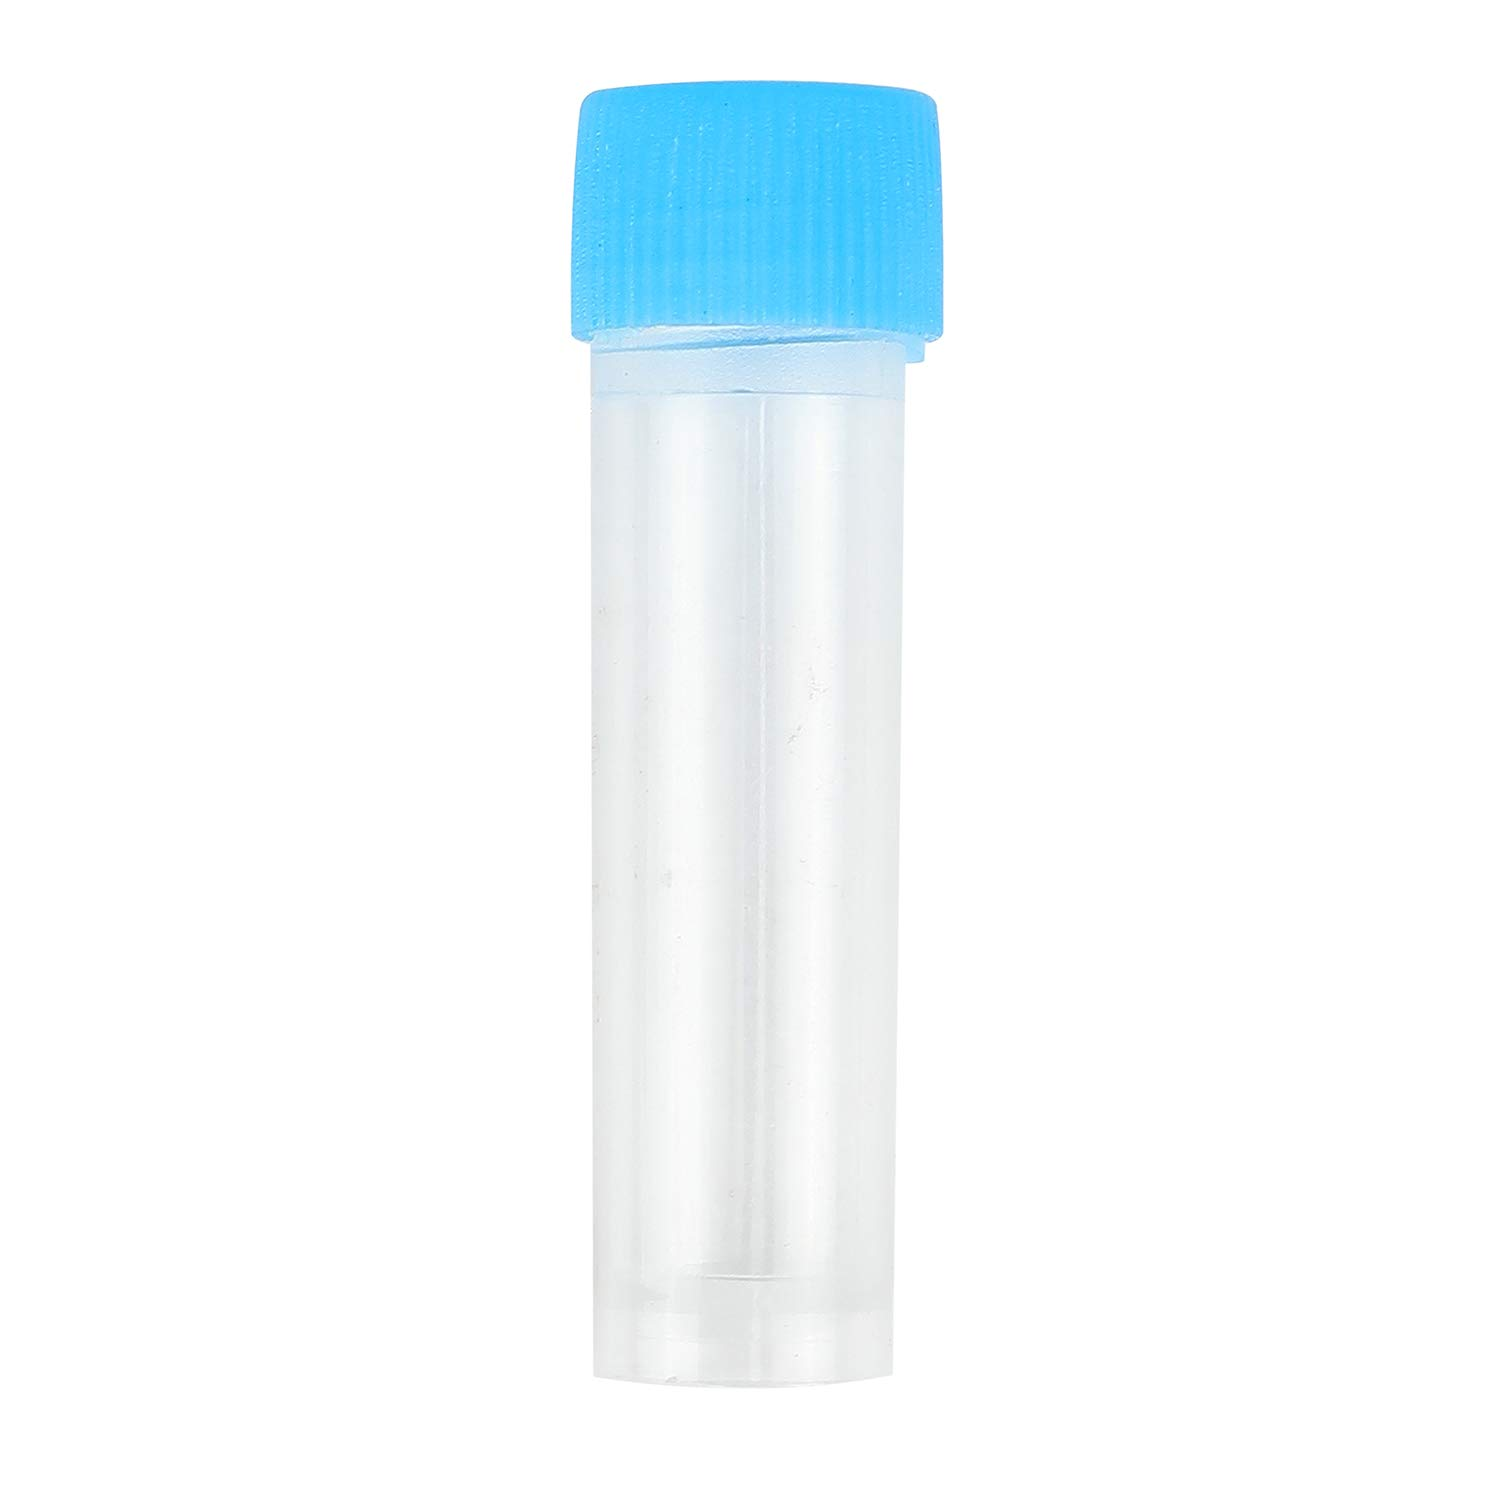 4ml Z-COLOR 50pcs Chemistry Plastic Test Tubes Vials Seal Caps Pack Container for Office School Chemistry Supplies